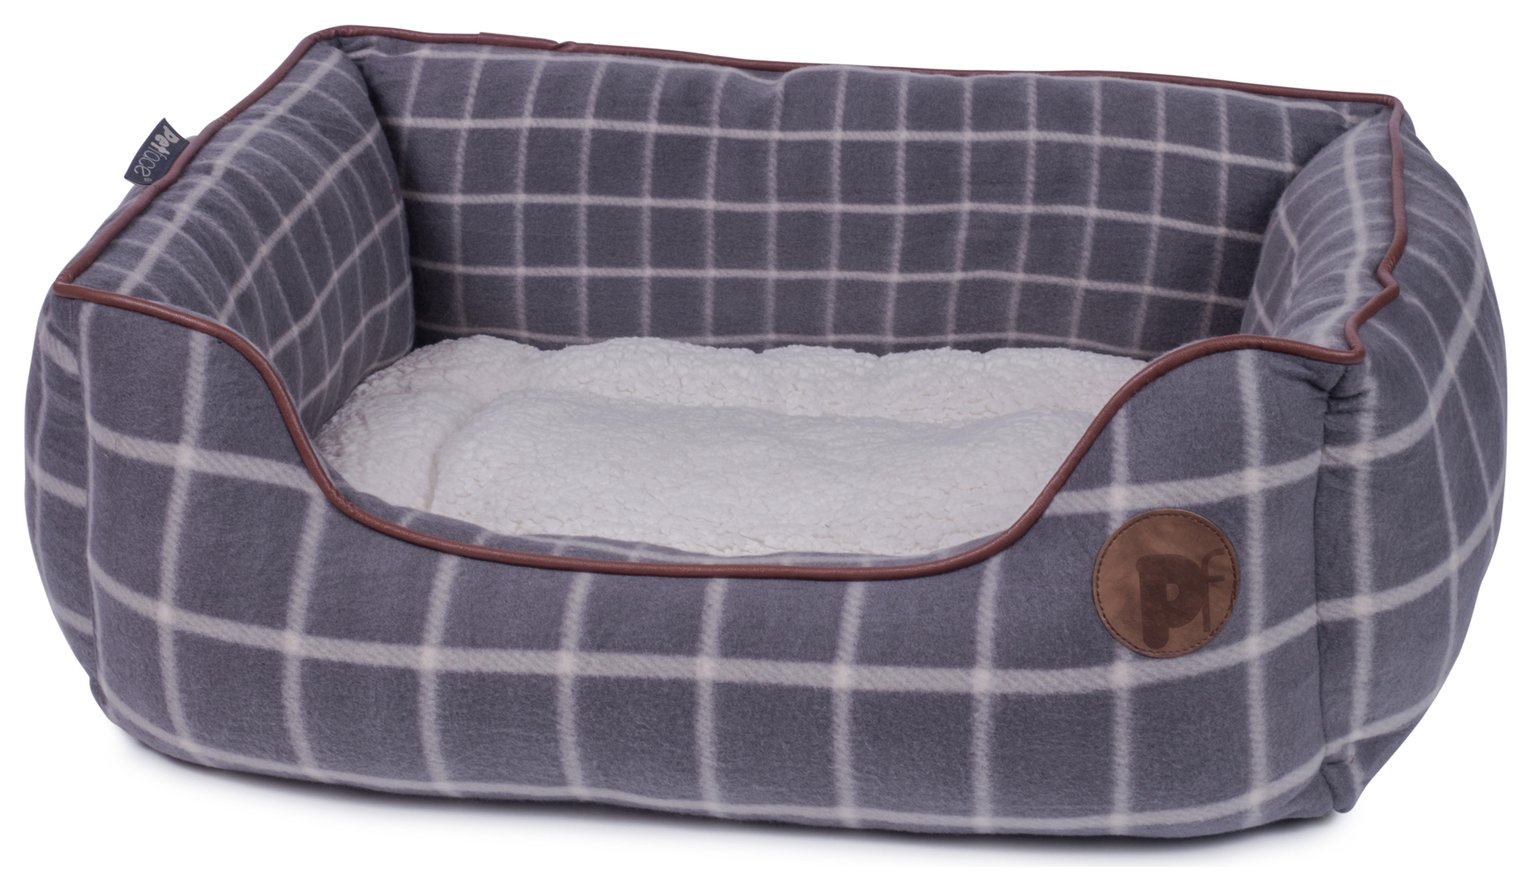 Petface Square Grey Window Check Dog Bed - Large